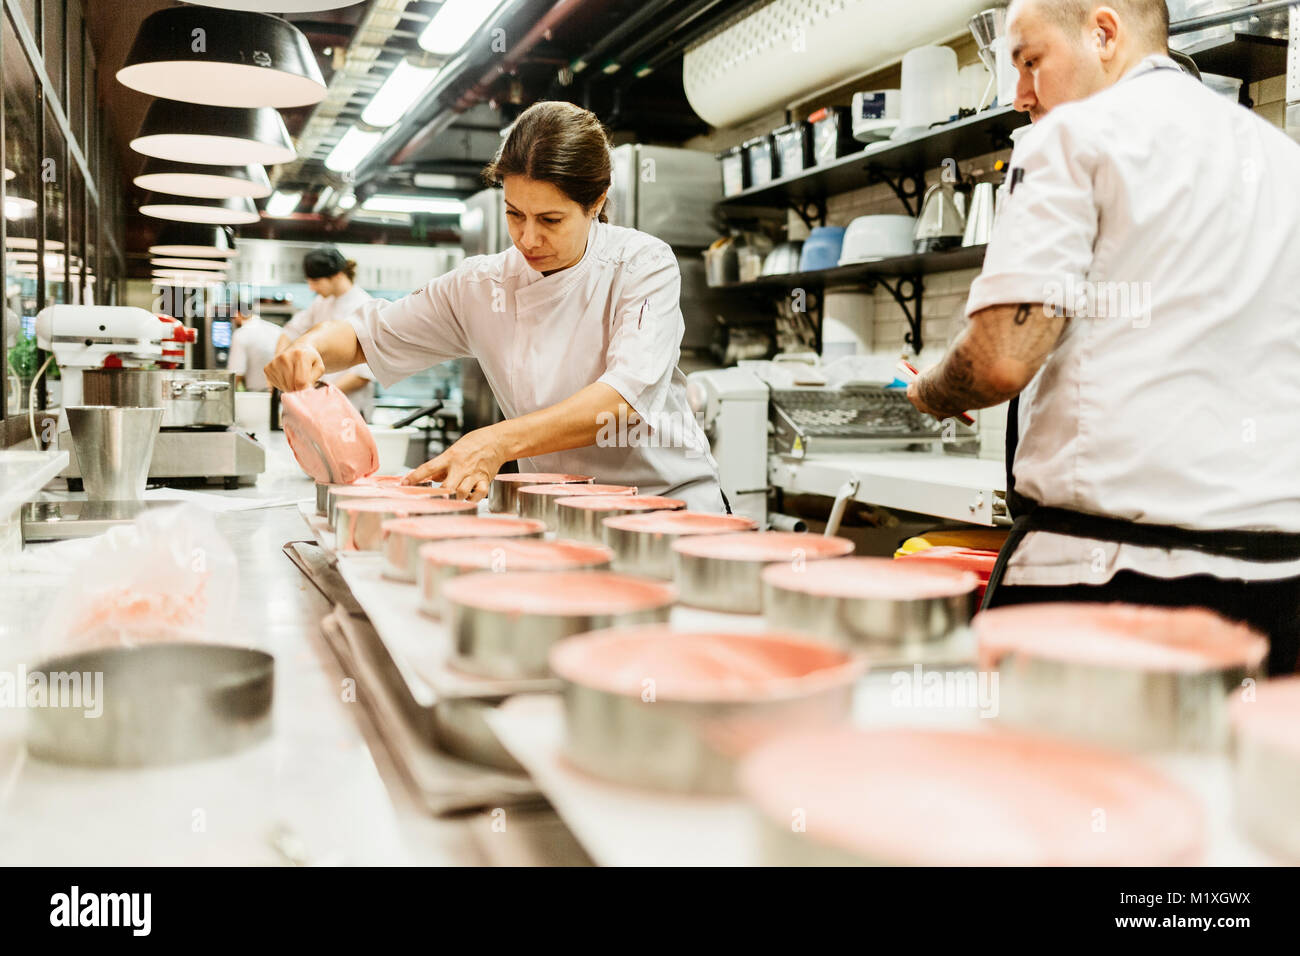 Chefs at bakery in Sweden - Stock Image